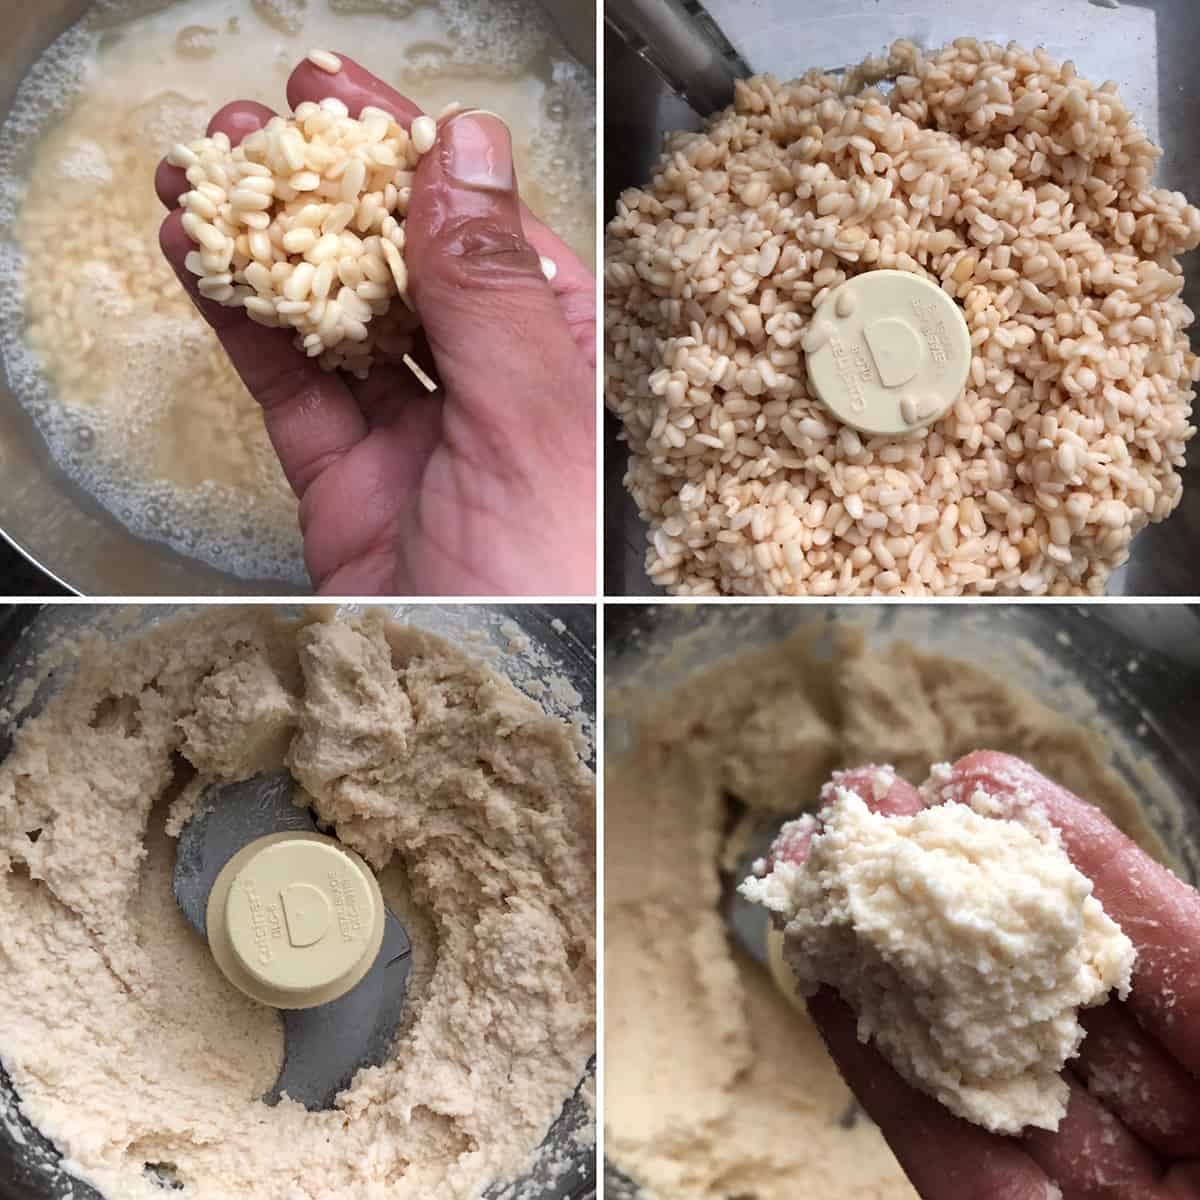 Photos showing soaked urad dal, then ground into a smooth paste with little water